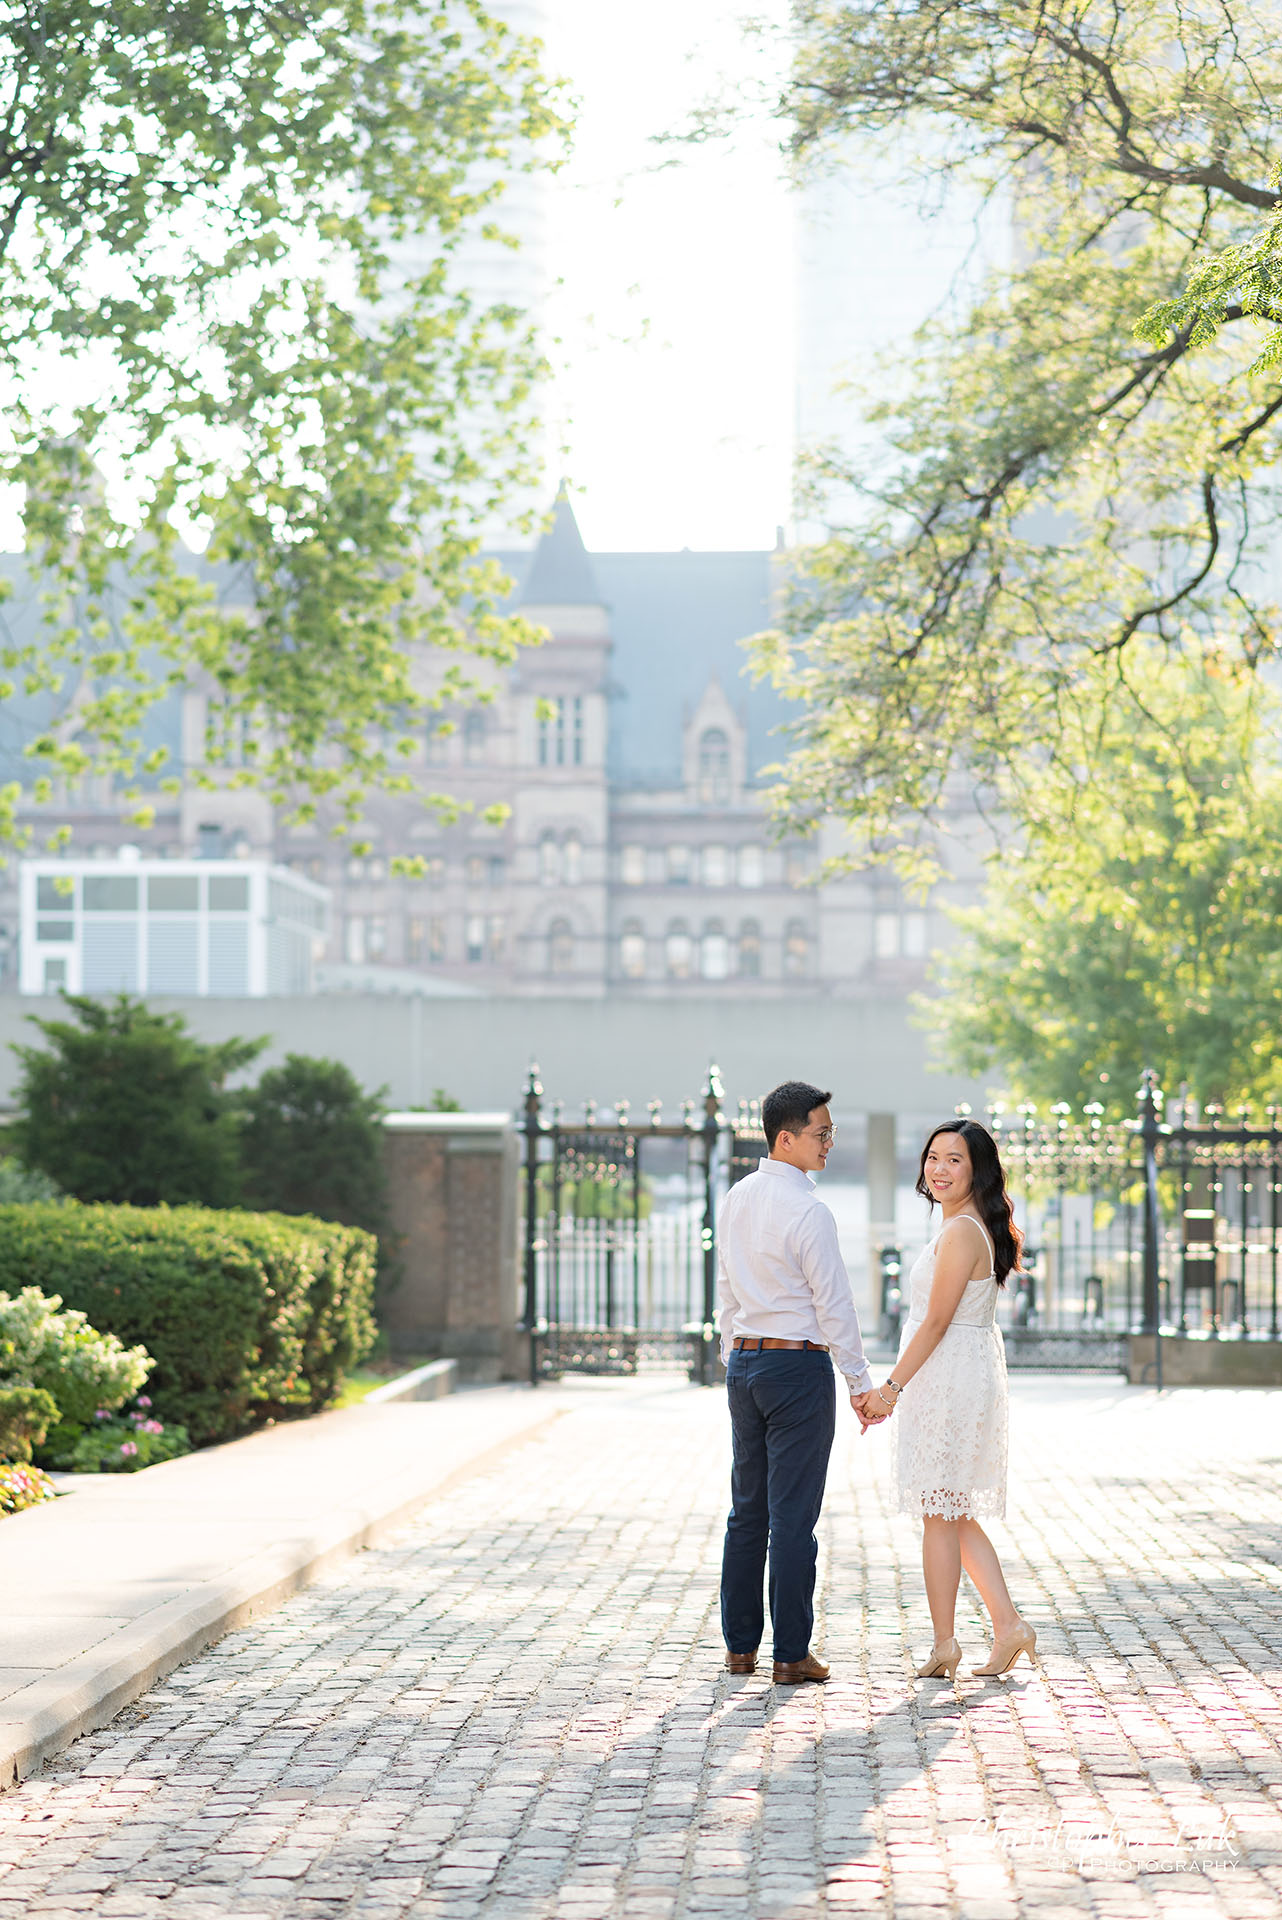 Christopher Luk Wedding Photographer Osgoode Hall Toronto Bride Groom Cobblestone Hug Holding Each Other Intimate Holding Hands Walking Together Sunrise Shadow Turn Around Smile Portrait Natural Candid Photojournalistic